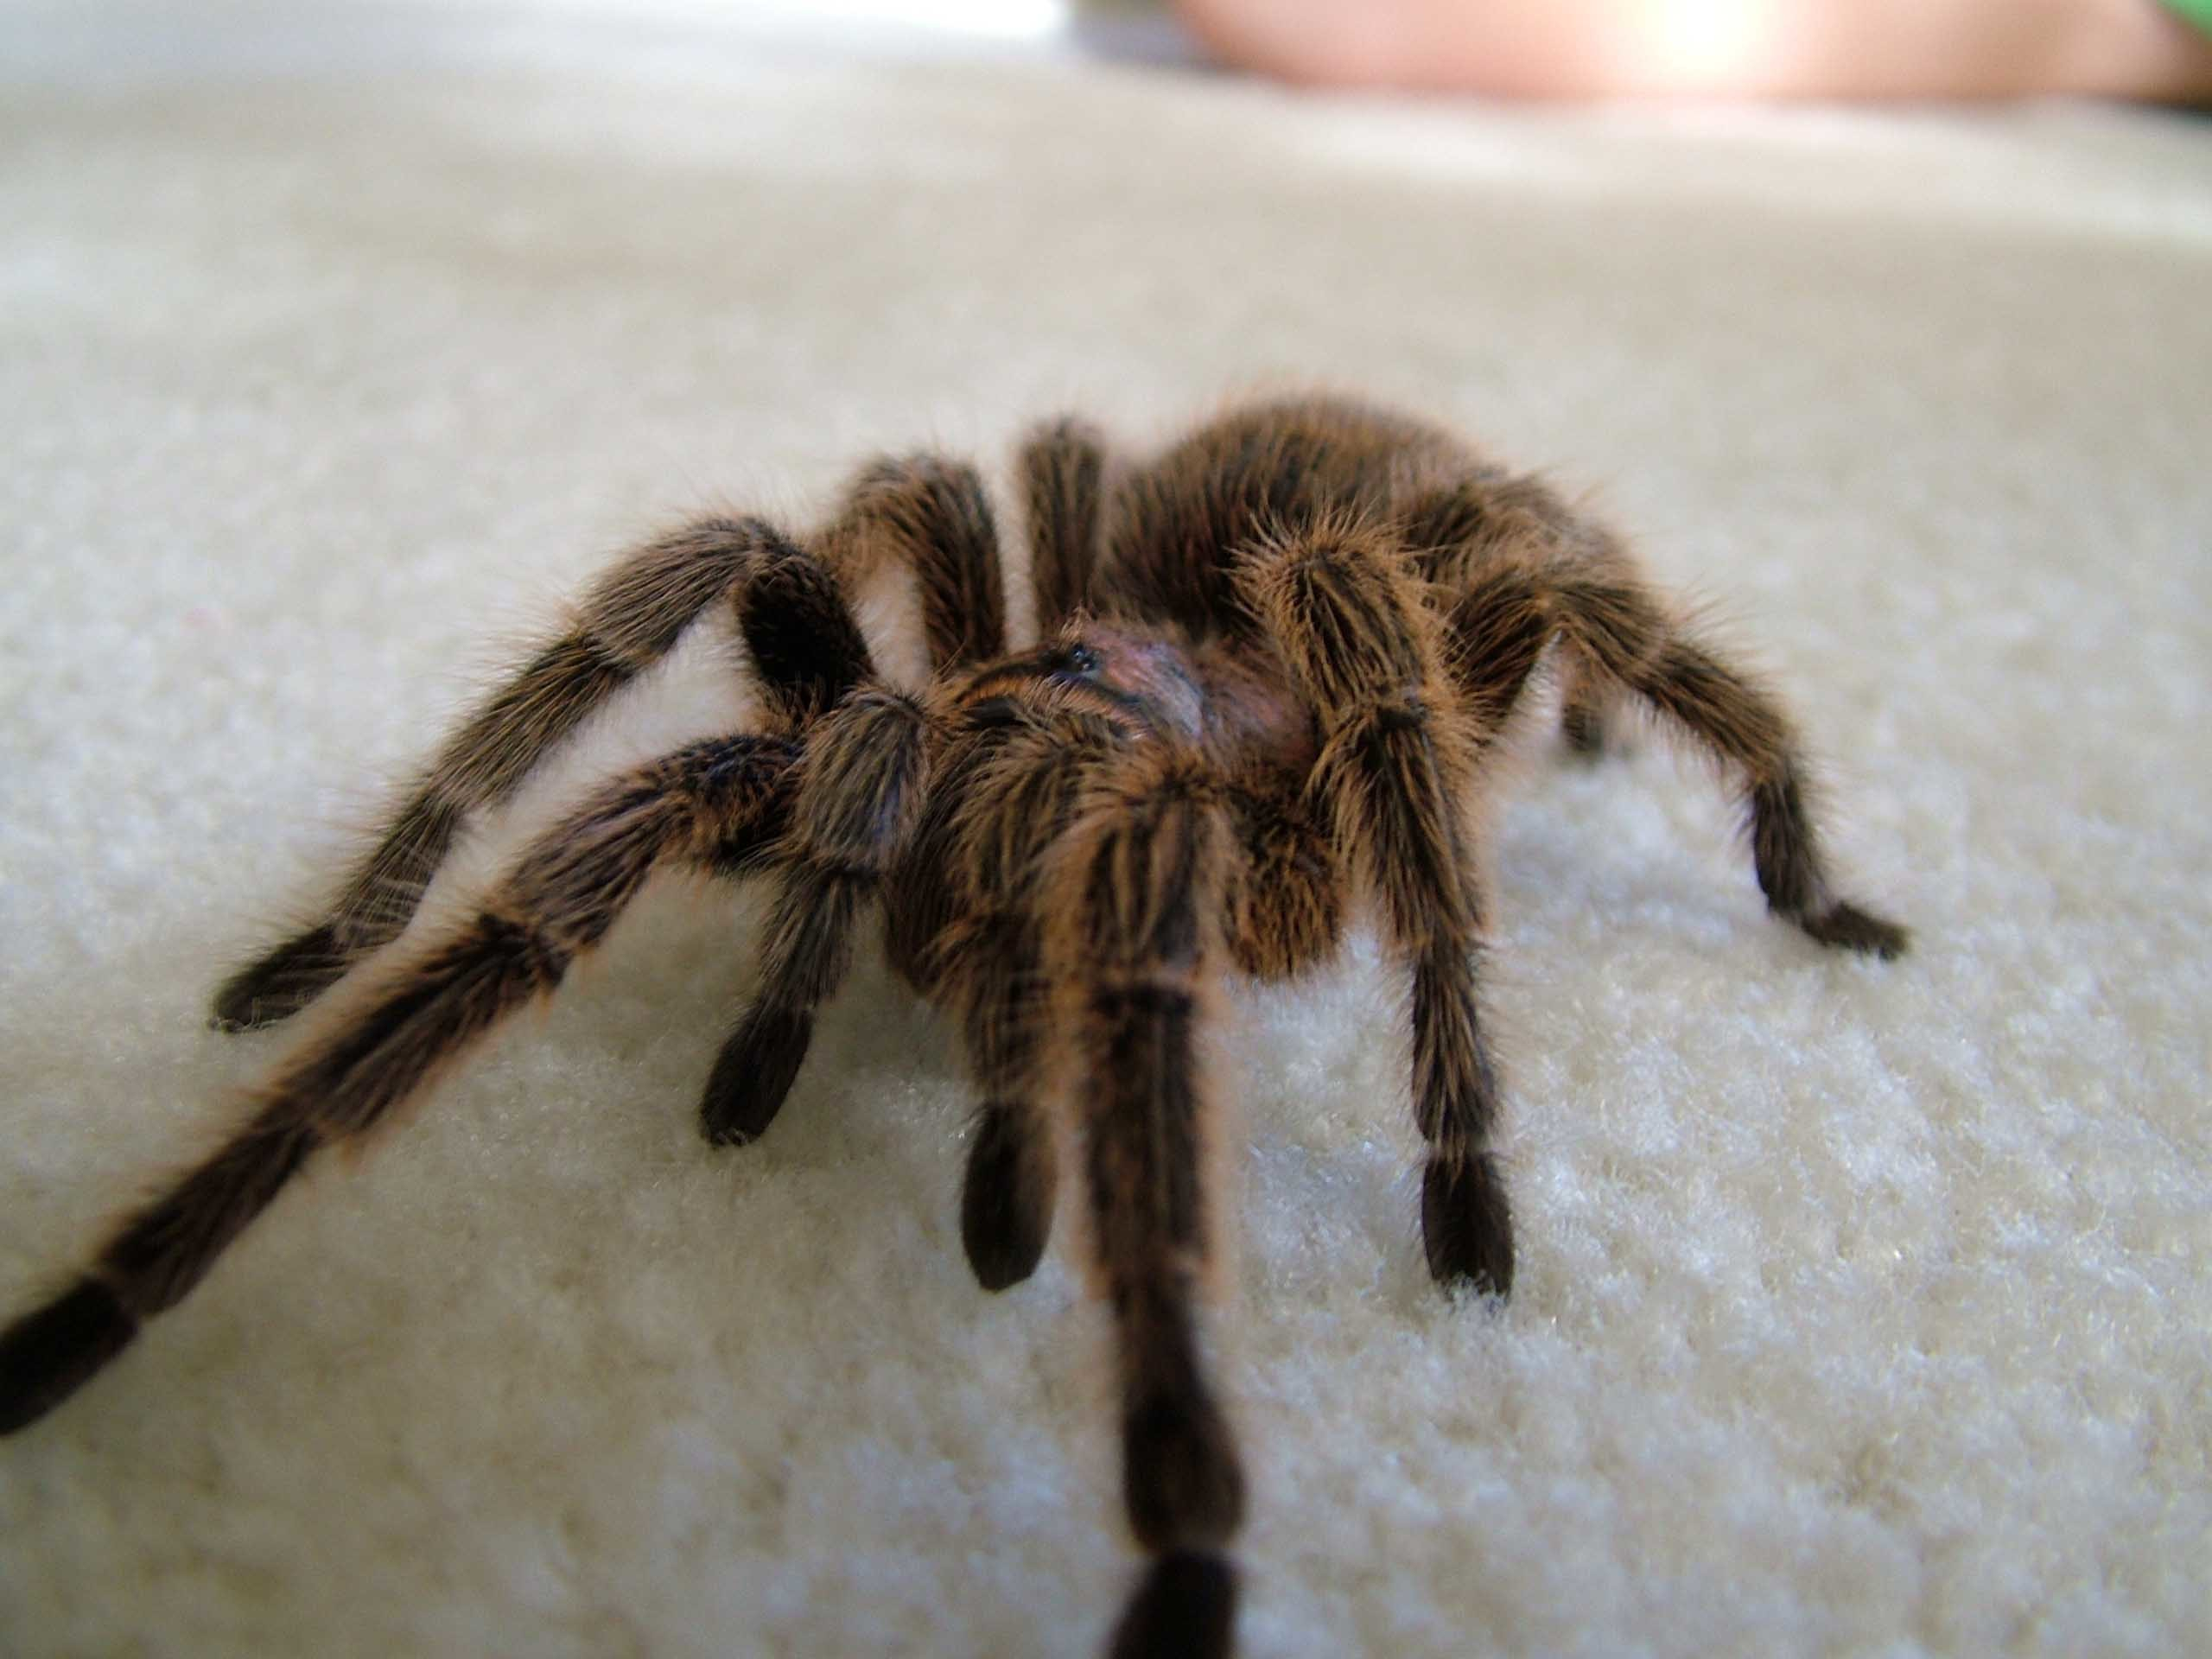 Scary Spider Moving HD Wallpapers – Daily Backgrounds in HD